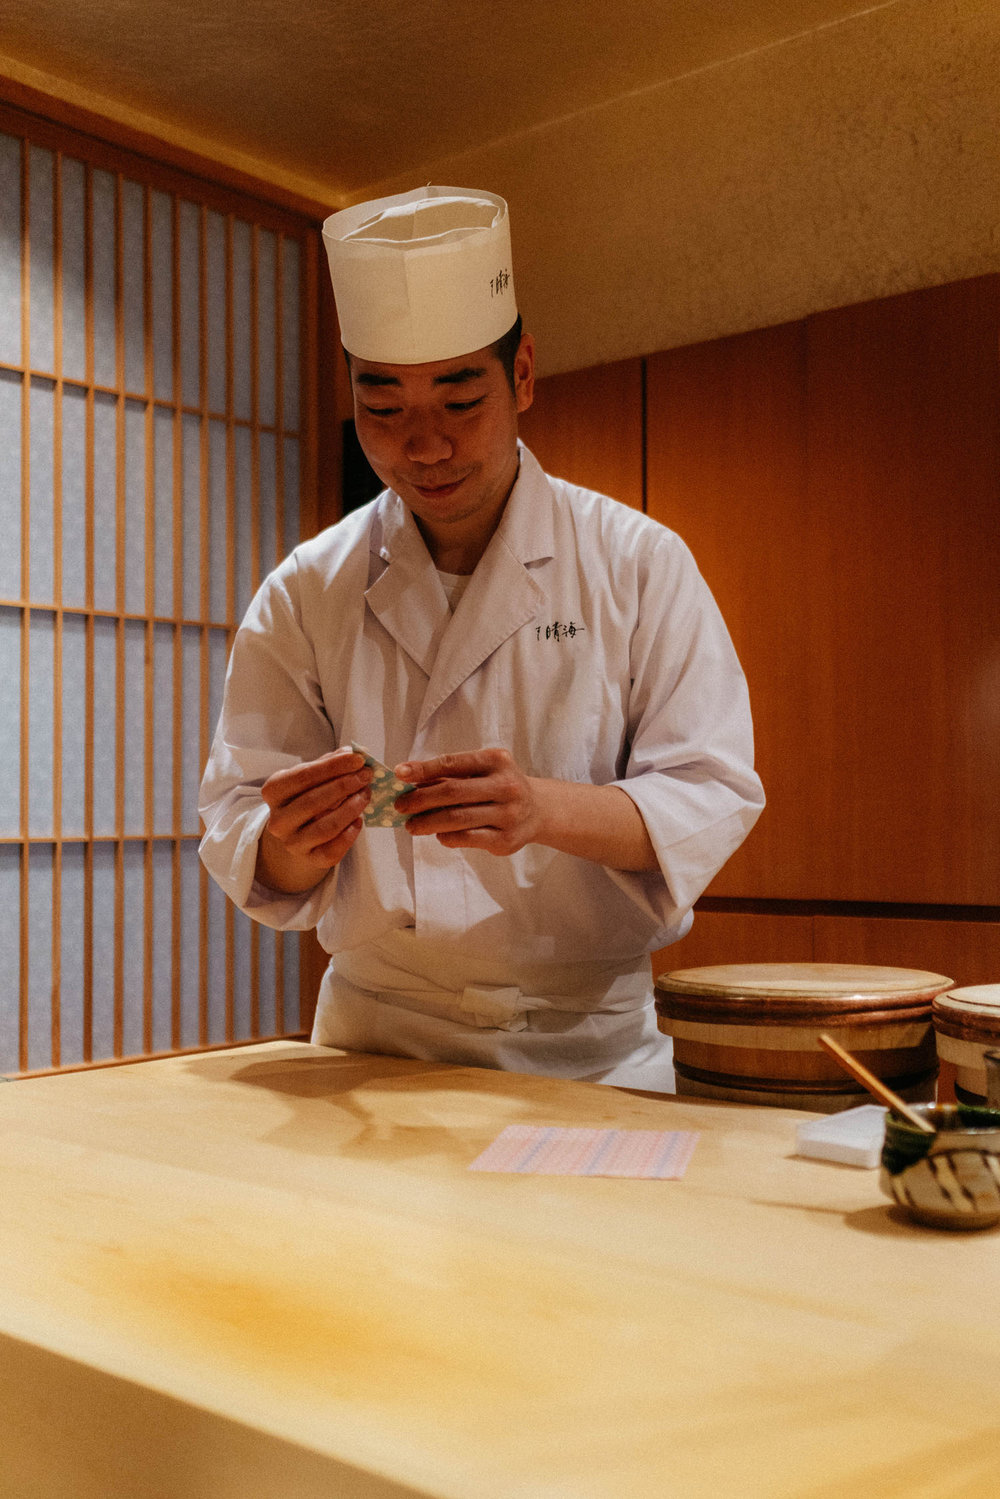 Chef Keisuke Yoshiya making us origami at the end of the meal – he said it's his specialty aside from sushi :)